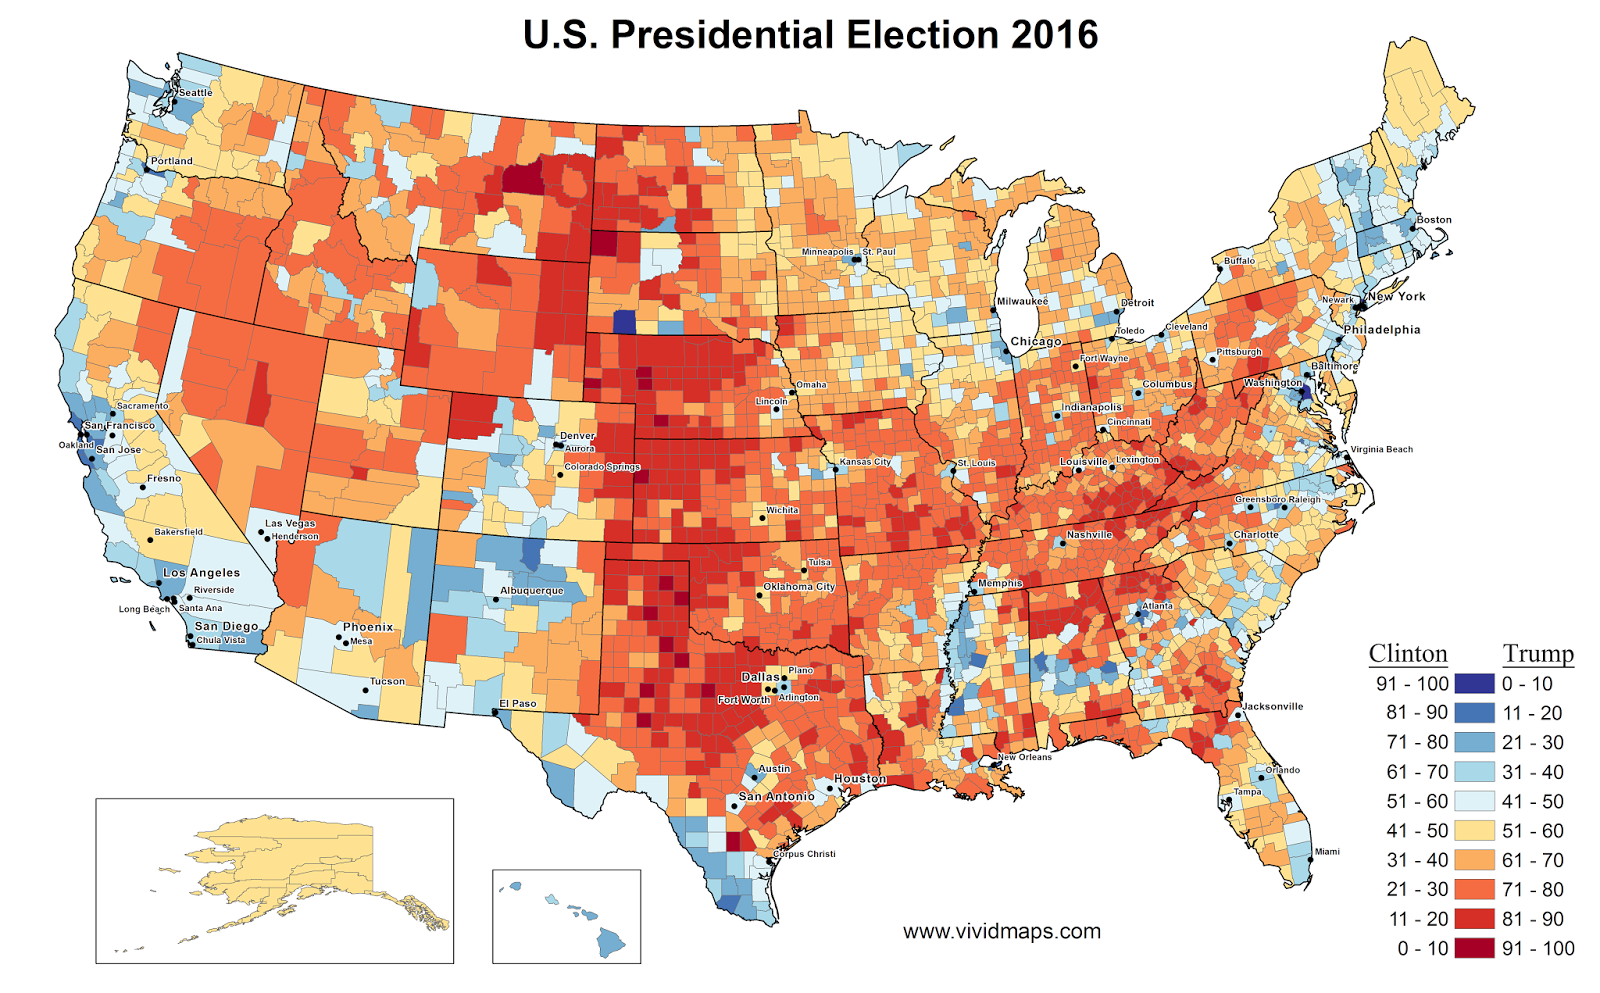 US Presidential Election Results In Three Maps Vivid Maps - 2016 election us map